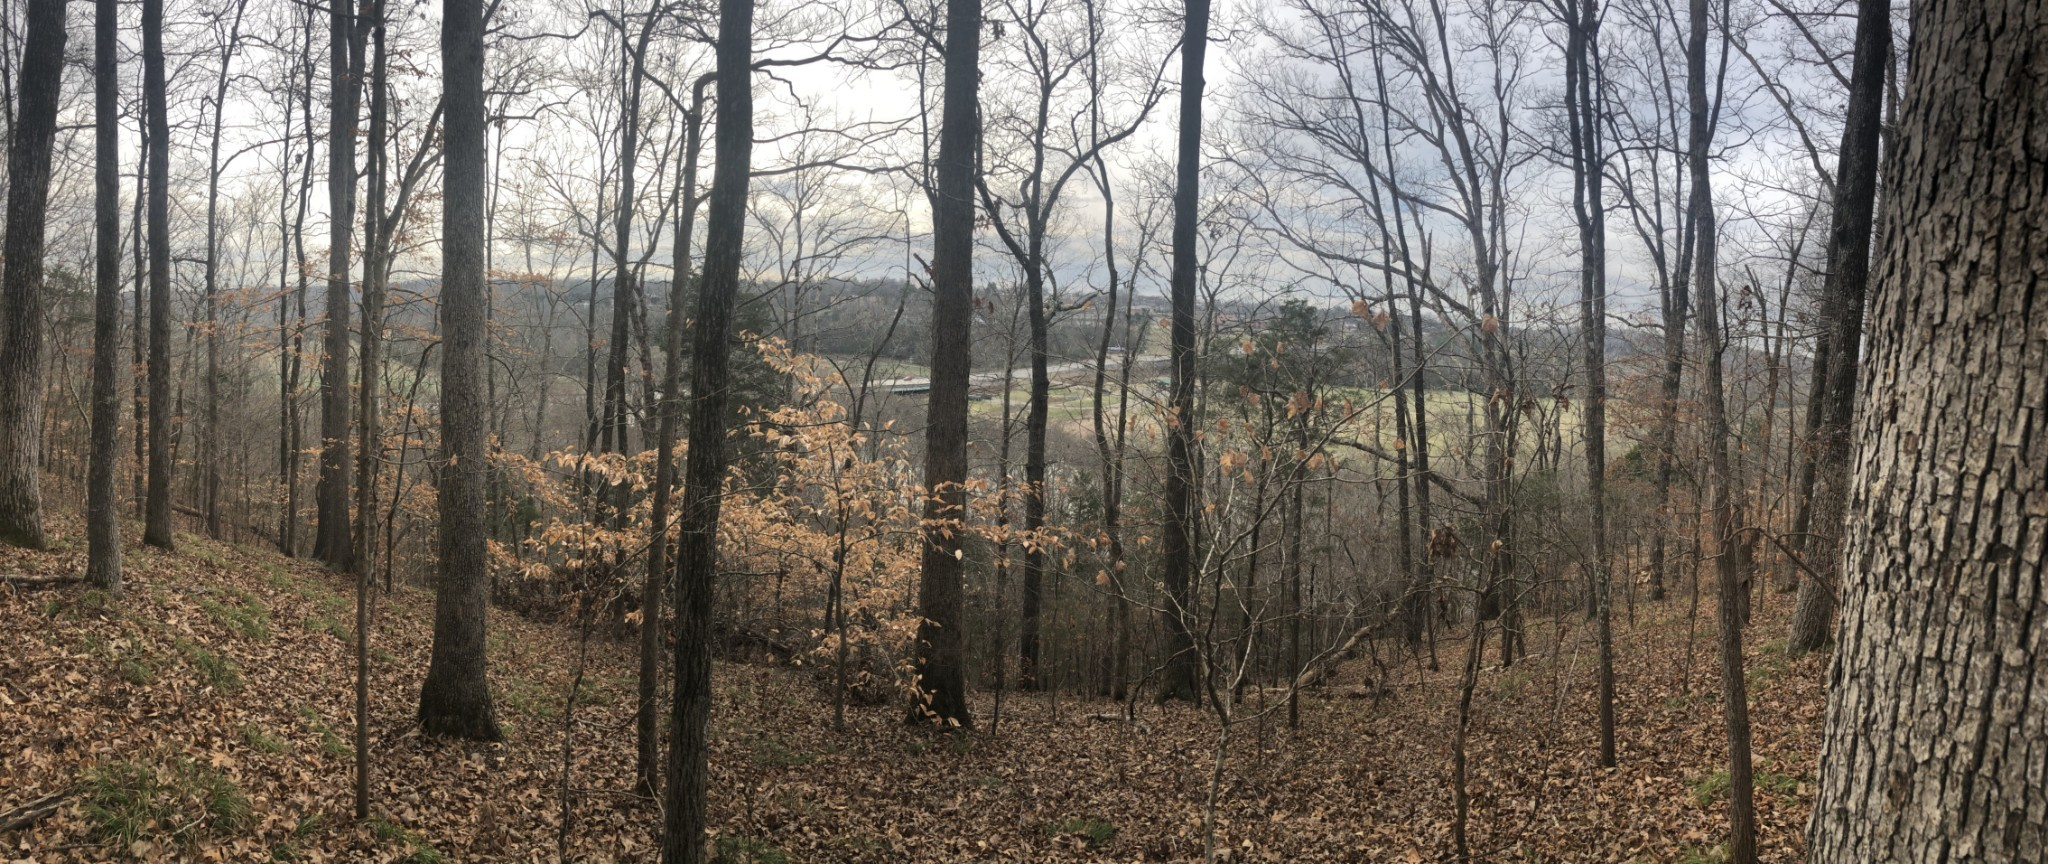 317 Highway 100 Lot 1 Property Photo - Centerville, TN real estate listing